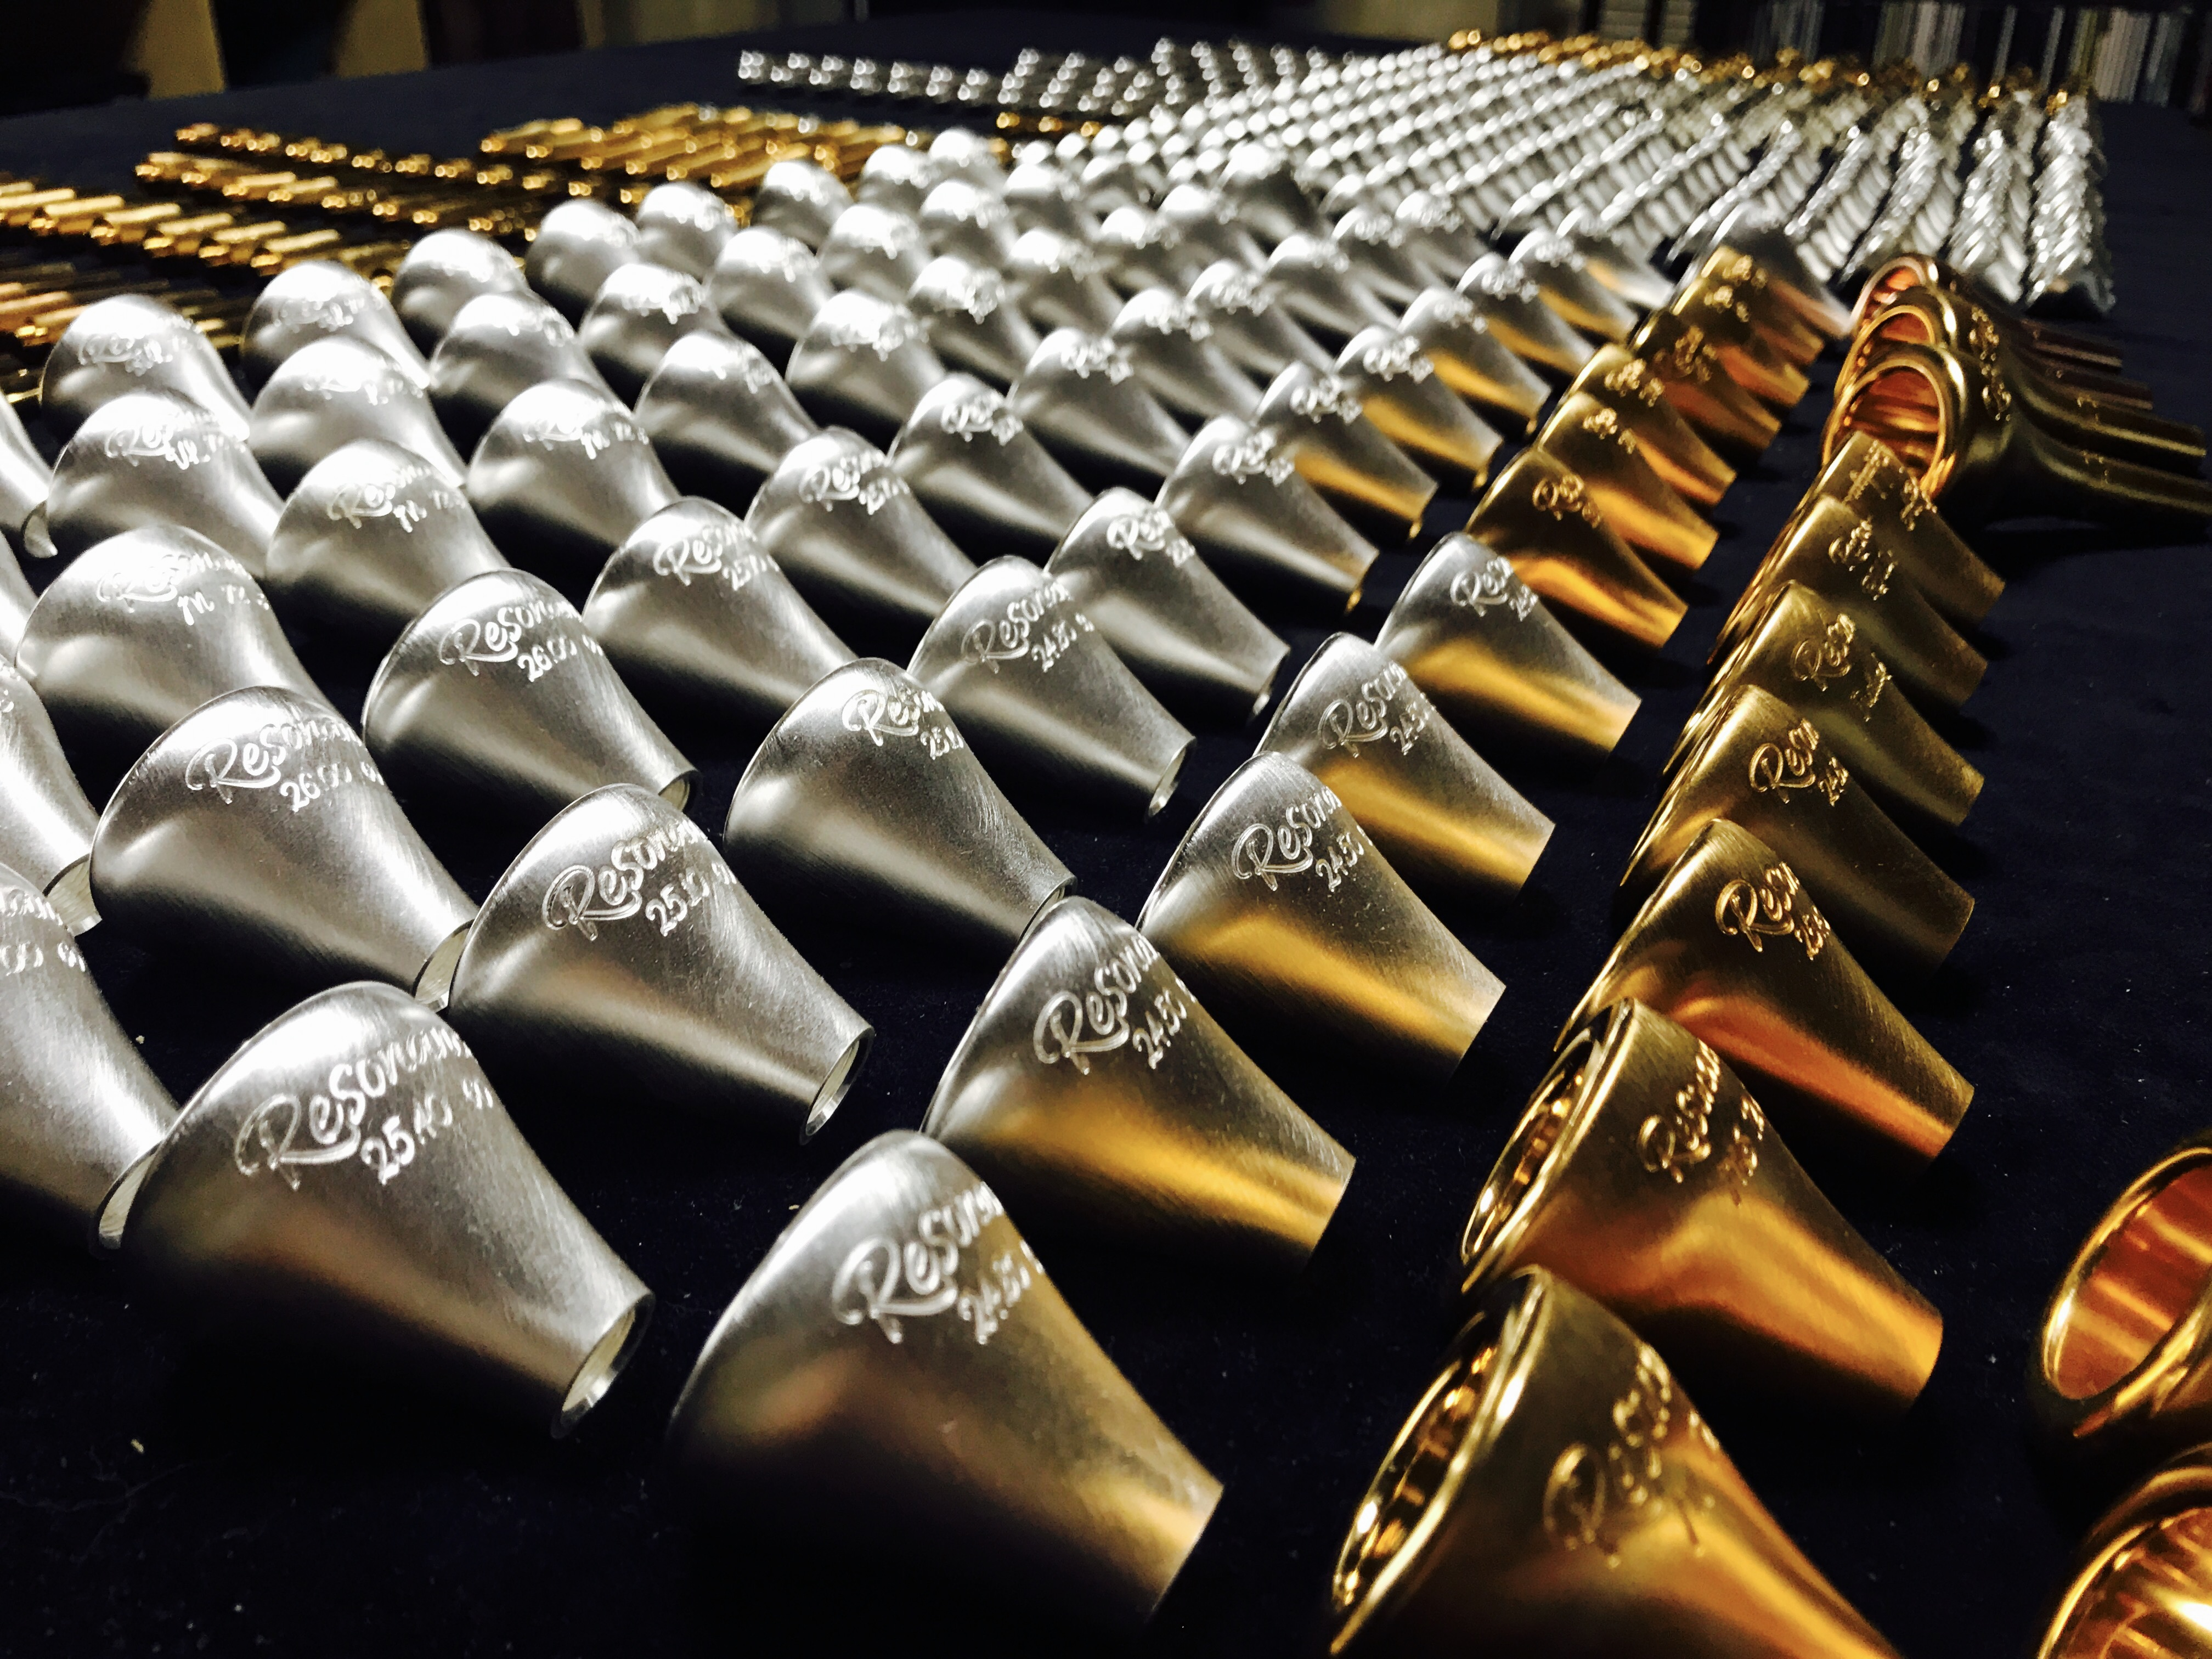 Wall of Trombone Mouthpieces 2.jpg